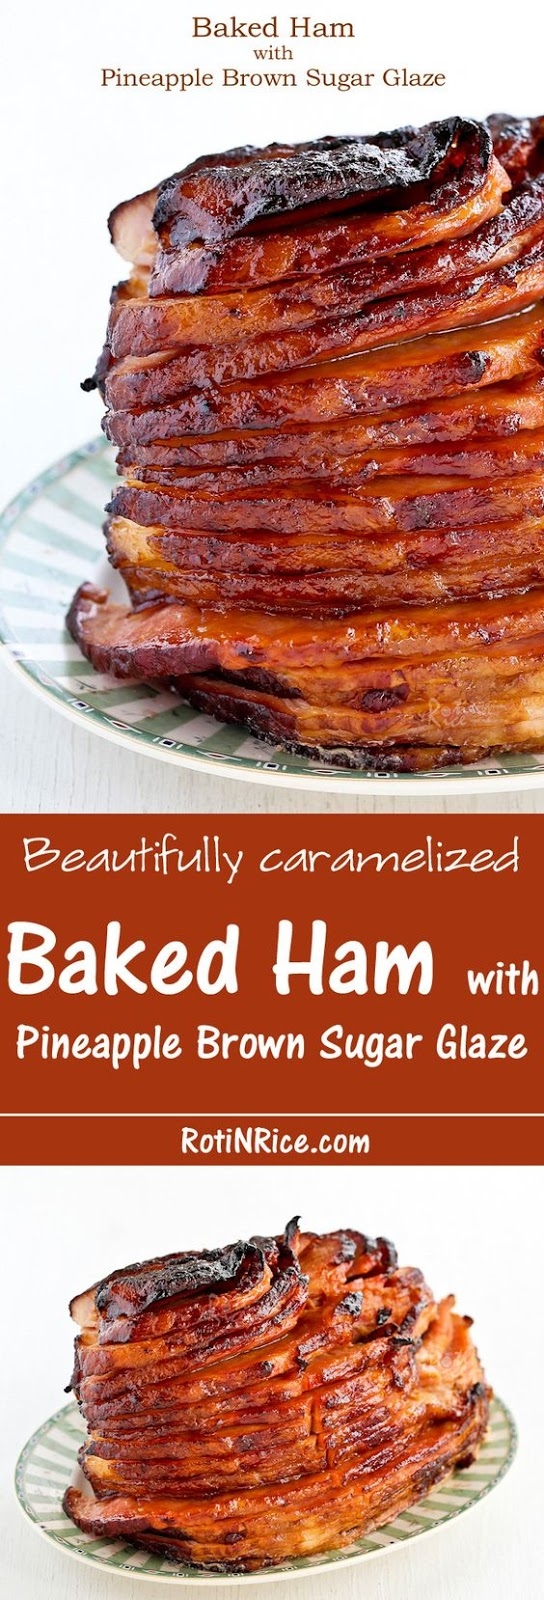 BAKED HAM WITH PINEAPPLE BROWN SUGAR GLAZE